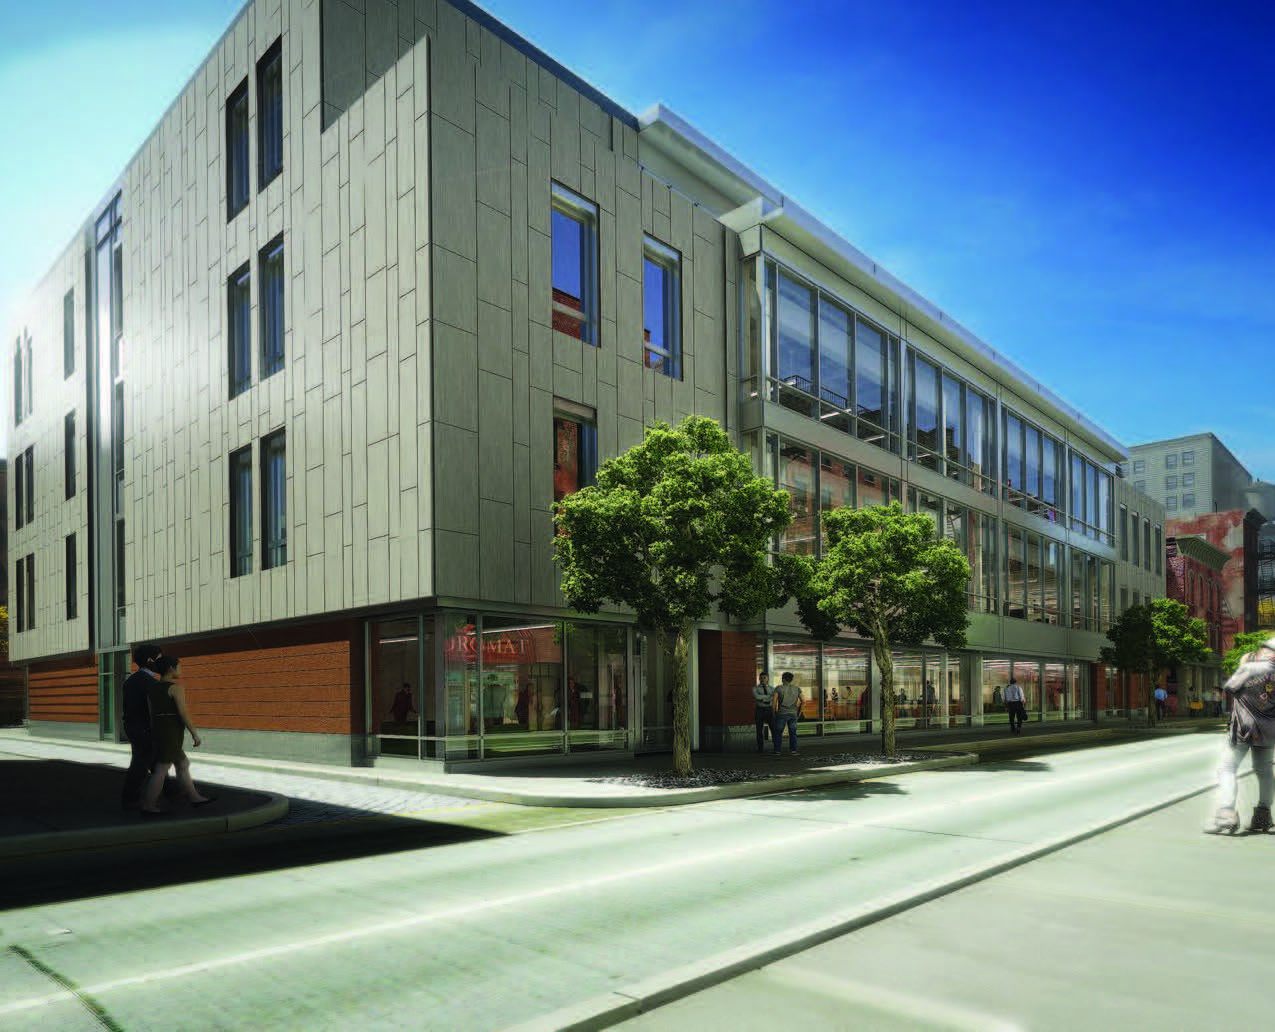 July 26th – OTR Office Development Behind the Scenes Tours